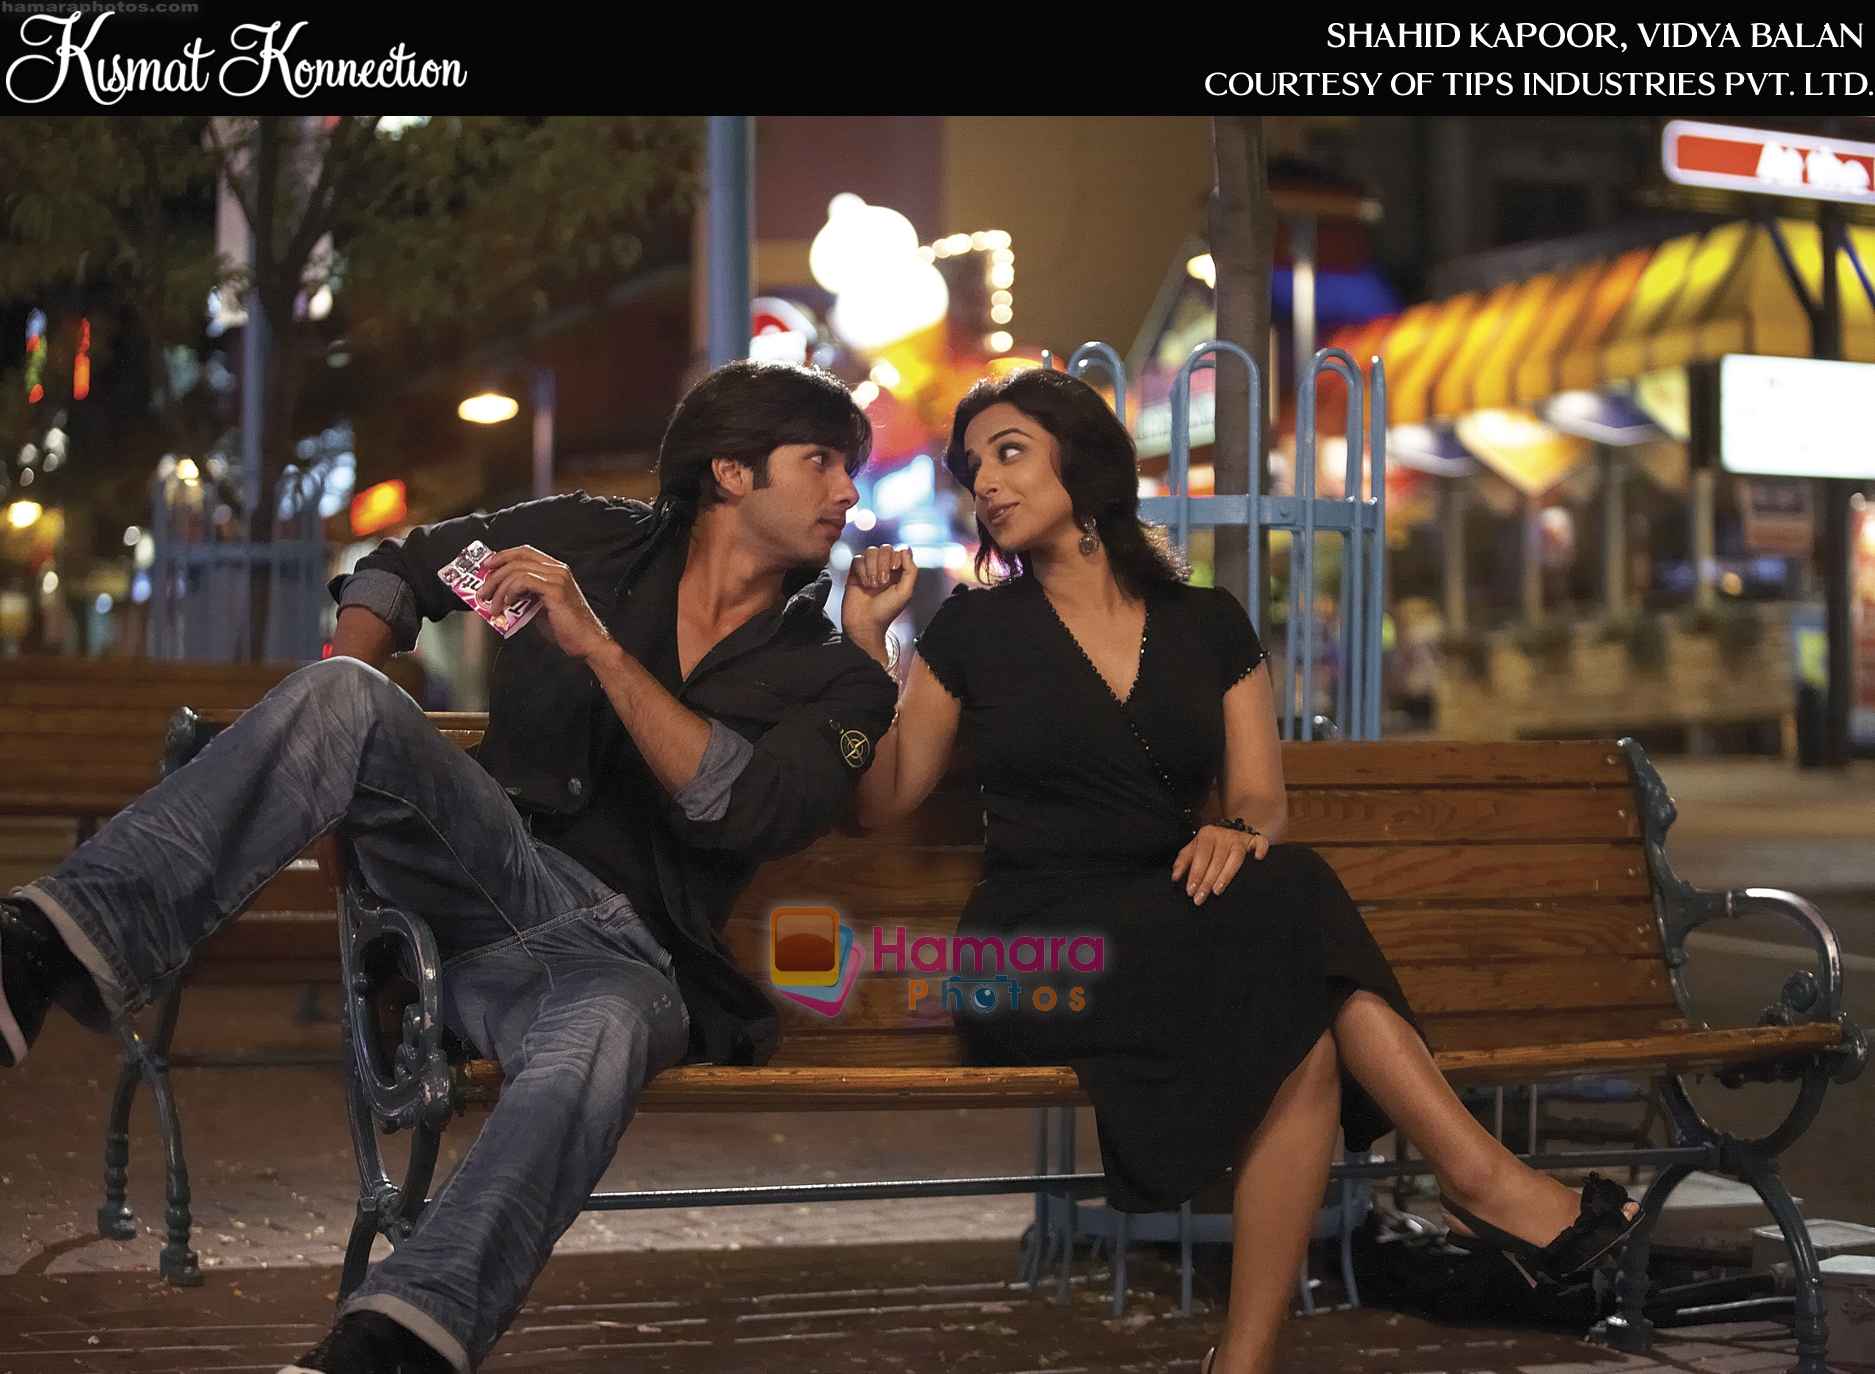 Shahid Kapoor, Vidya Balan in a High Quality Still from Kismat Konnection Movie